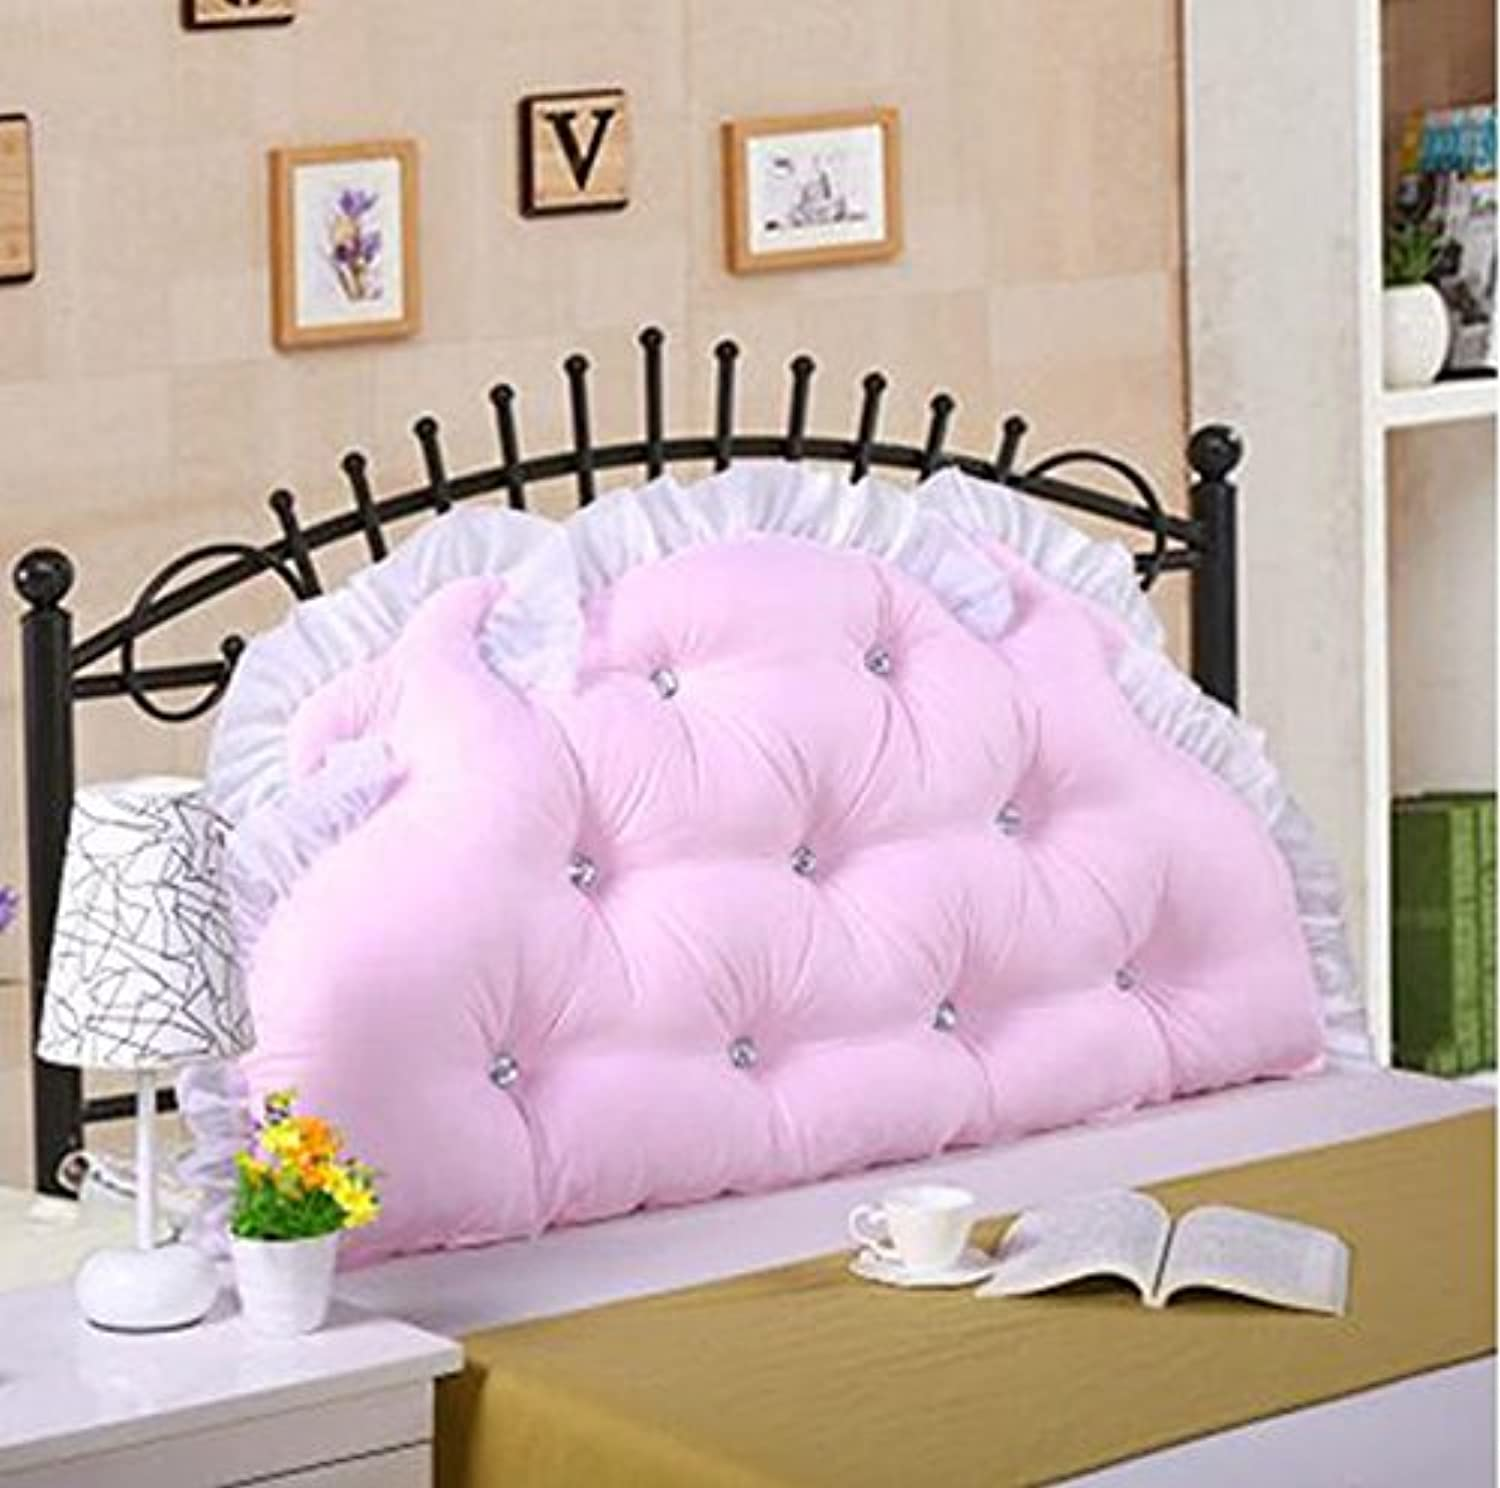 RFJJAL Large Cushion Soft Pack Cotton Princess Bed Large Backrest Double Long Pillow with Core Removable and Washable (color   A2, Size   2m)